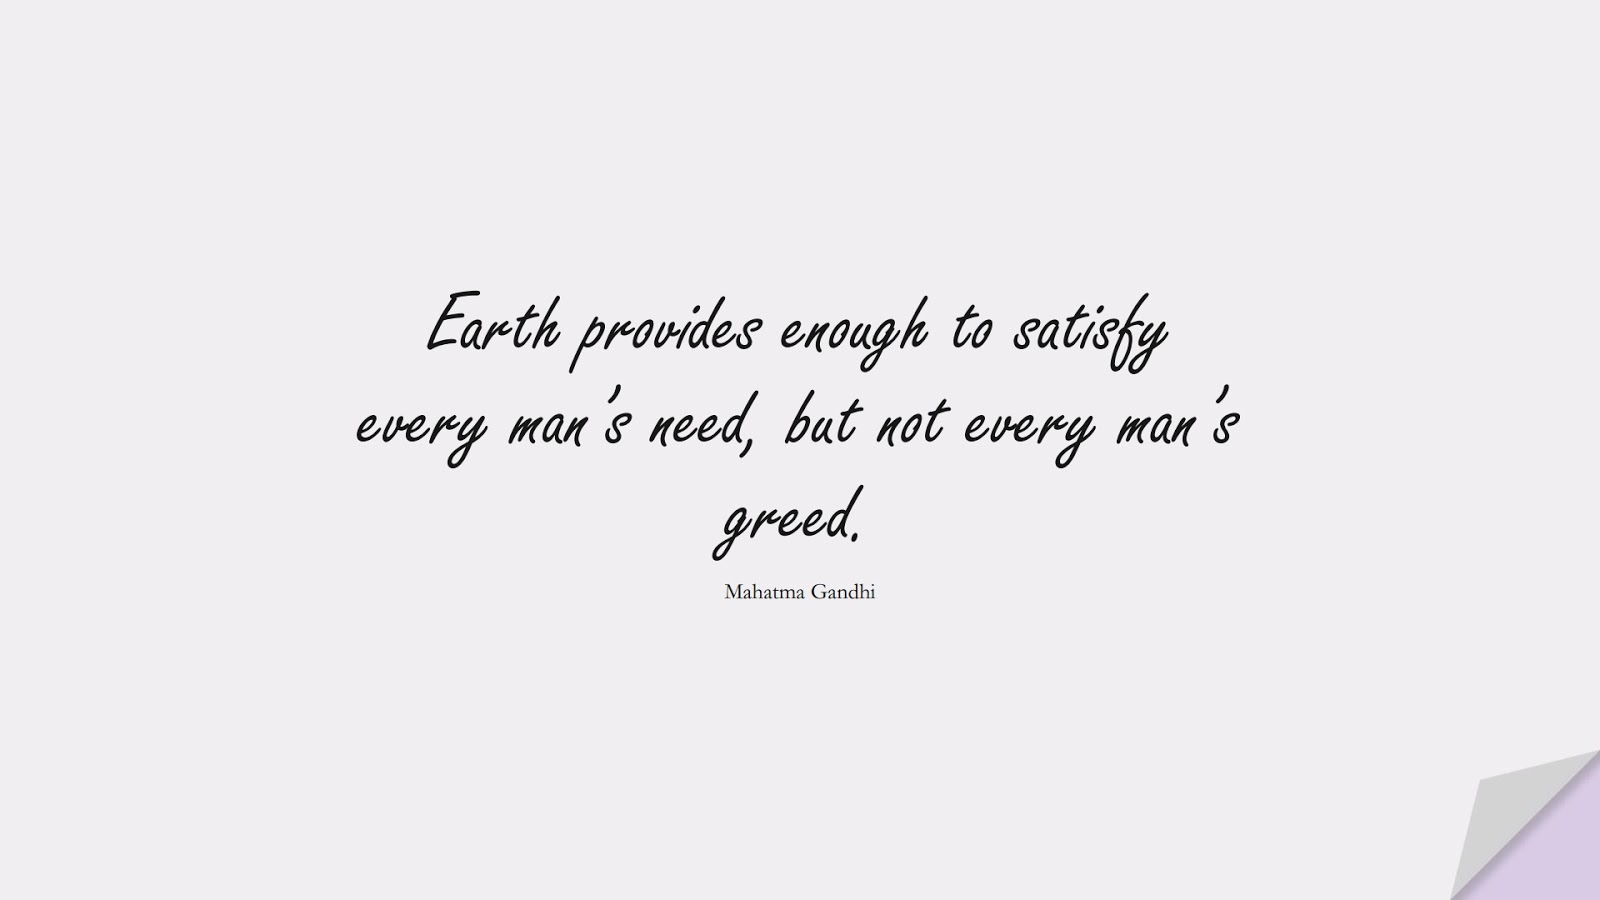 Earth provides enough to satisfy every man's need, but not every man's greed. (Mahatma Gandhi);  #HumanityQuotes